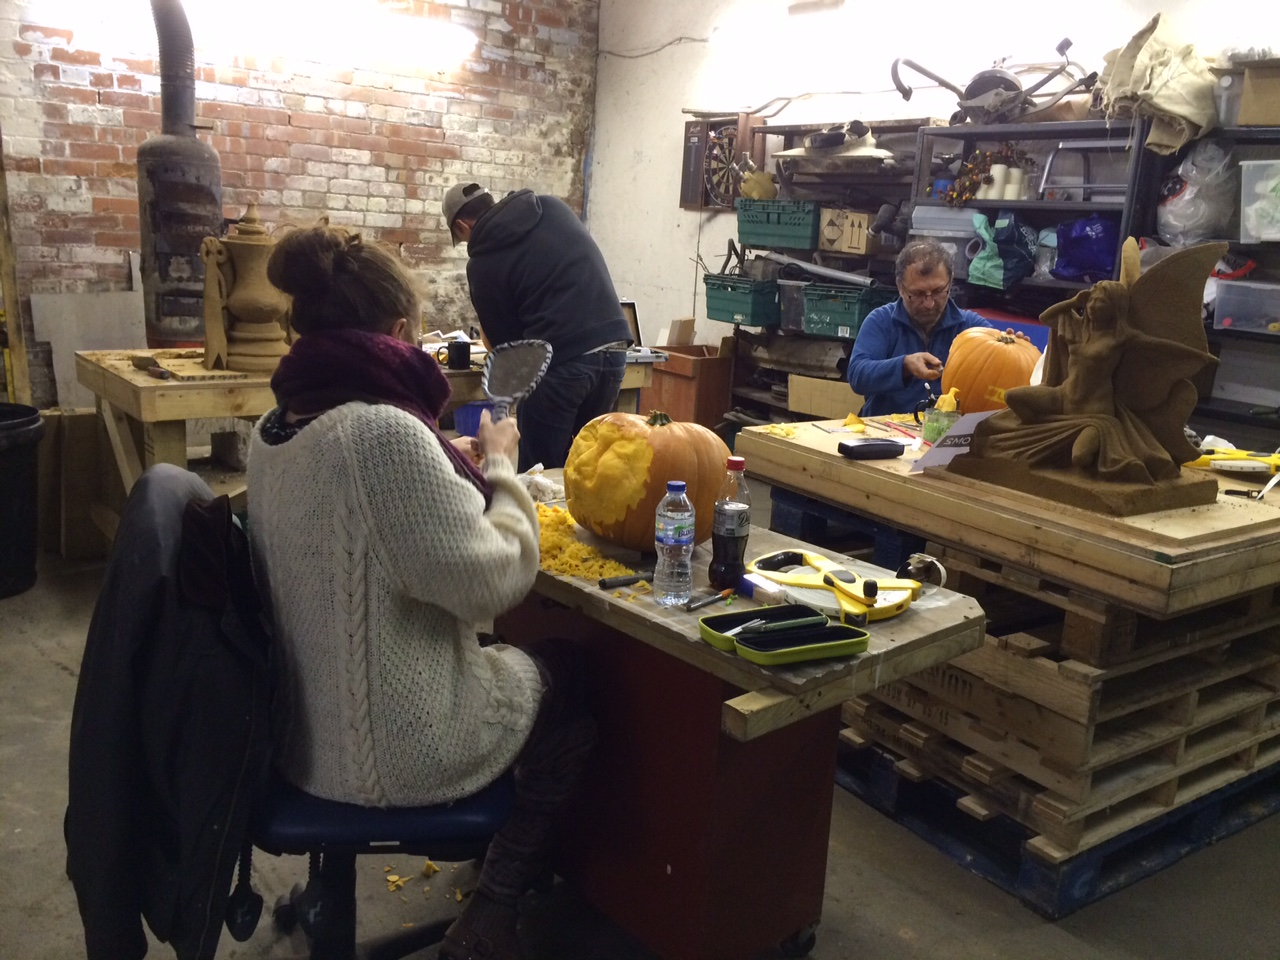 The Sand In Your Eye team busy carving the pumpkins in the workshop